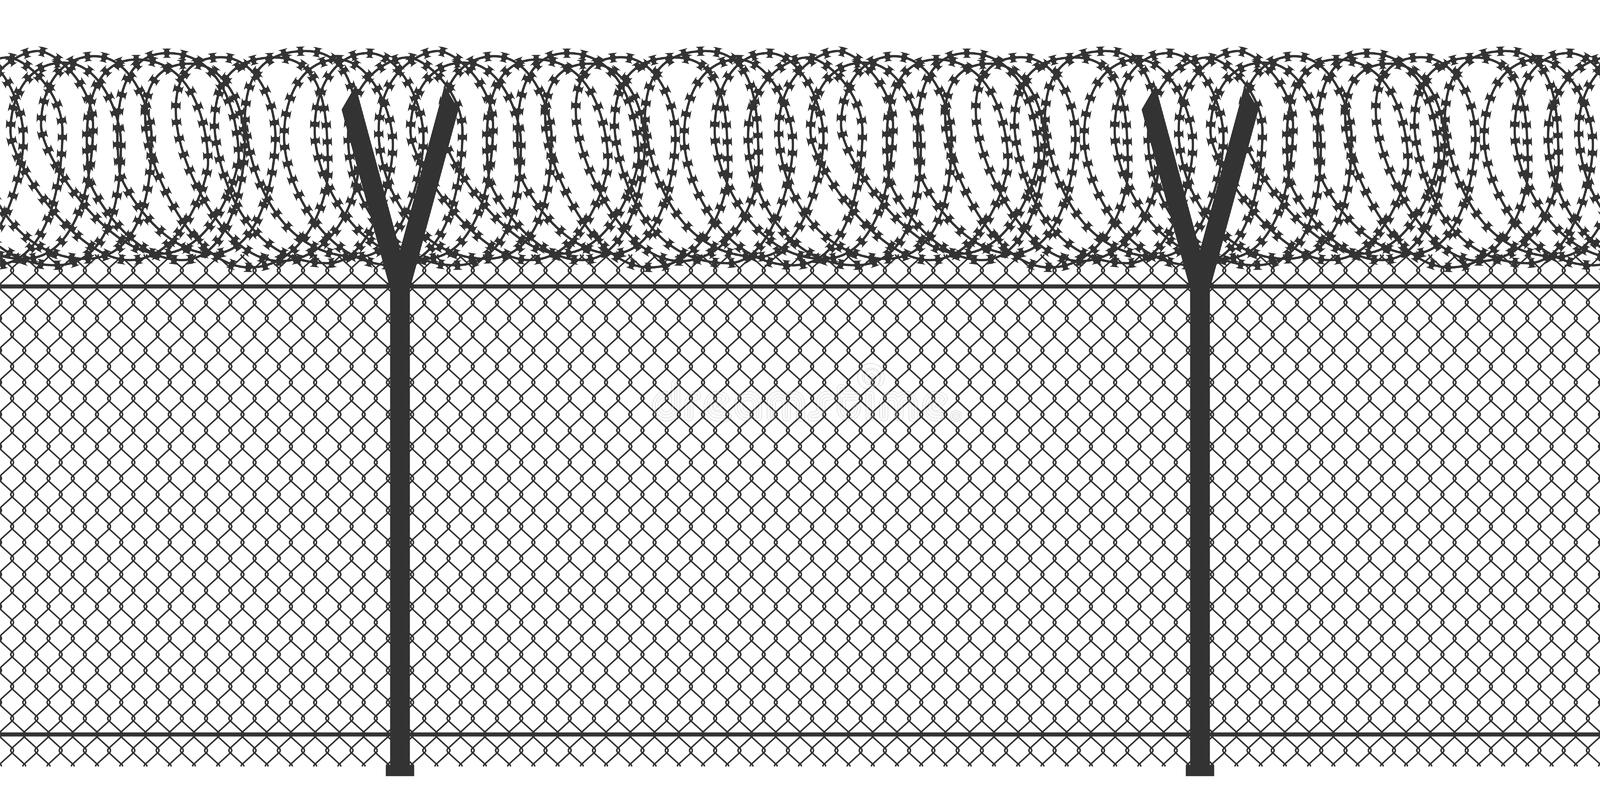 Fence with barbed wire. Vector seamless repeating background. Metal grid isolated on white. Constructive security element. Protects against illegal entry into royalty free illustration